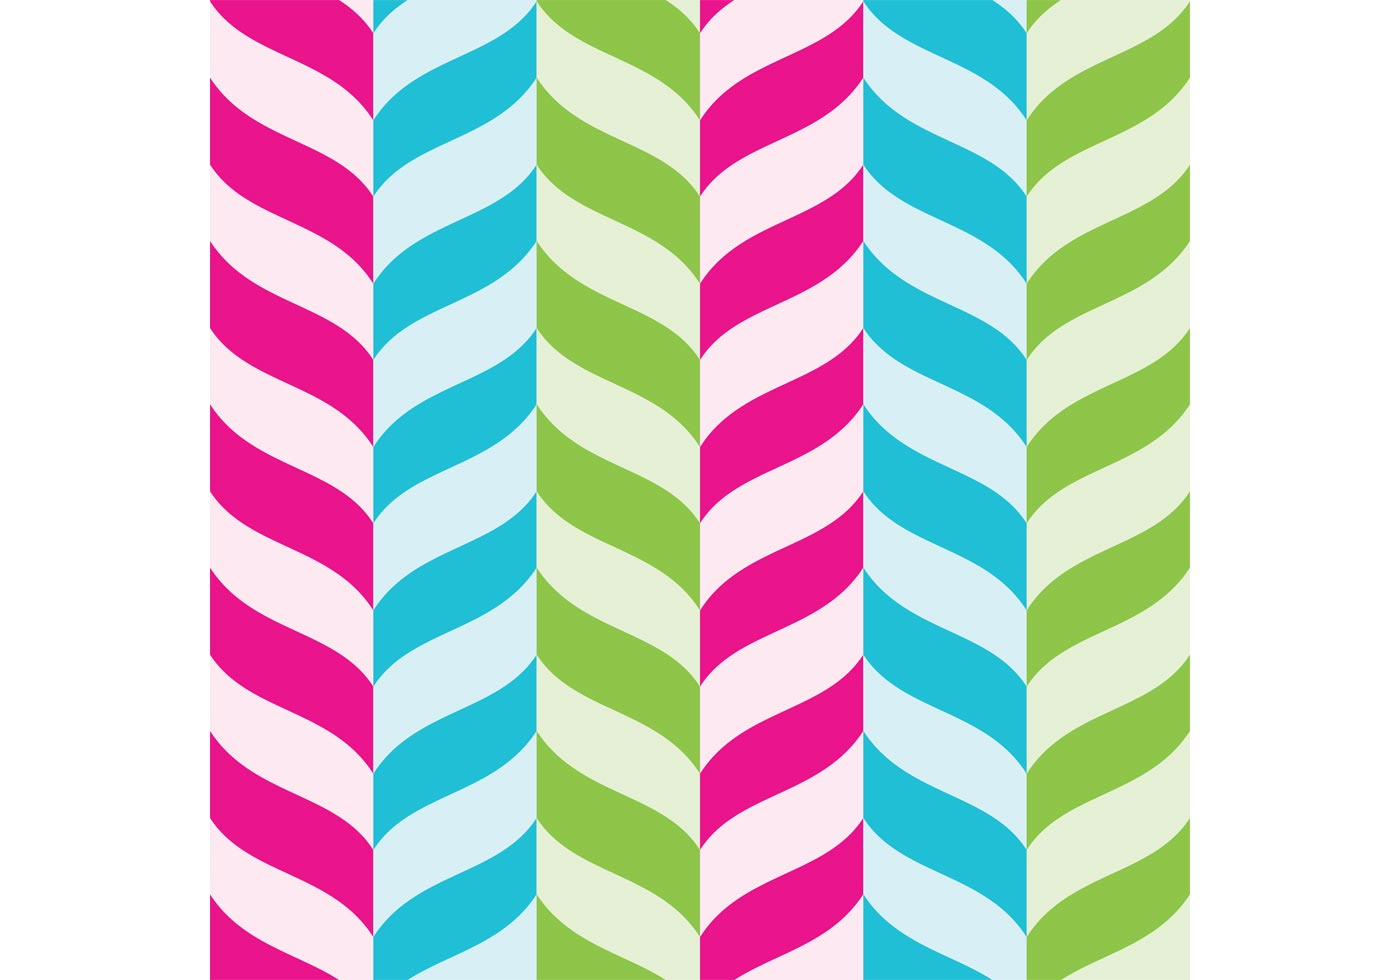 candy cane vector background download free vector art